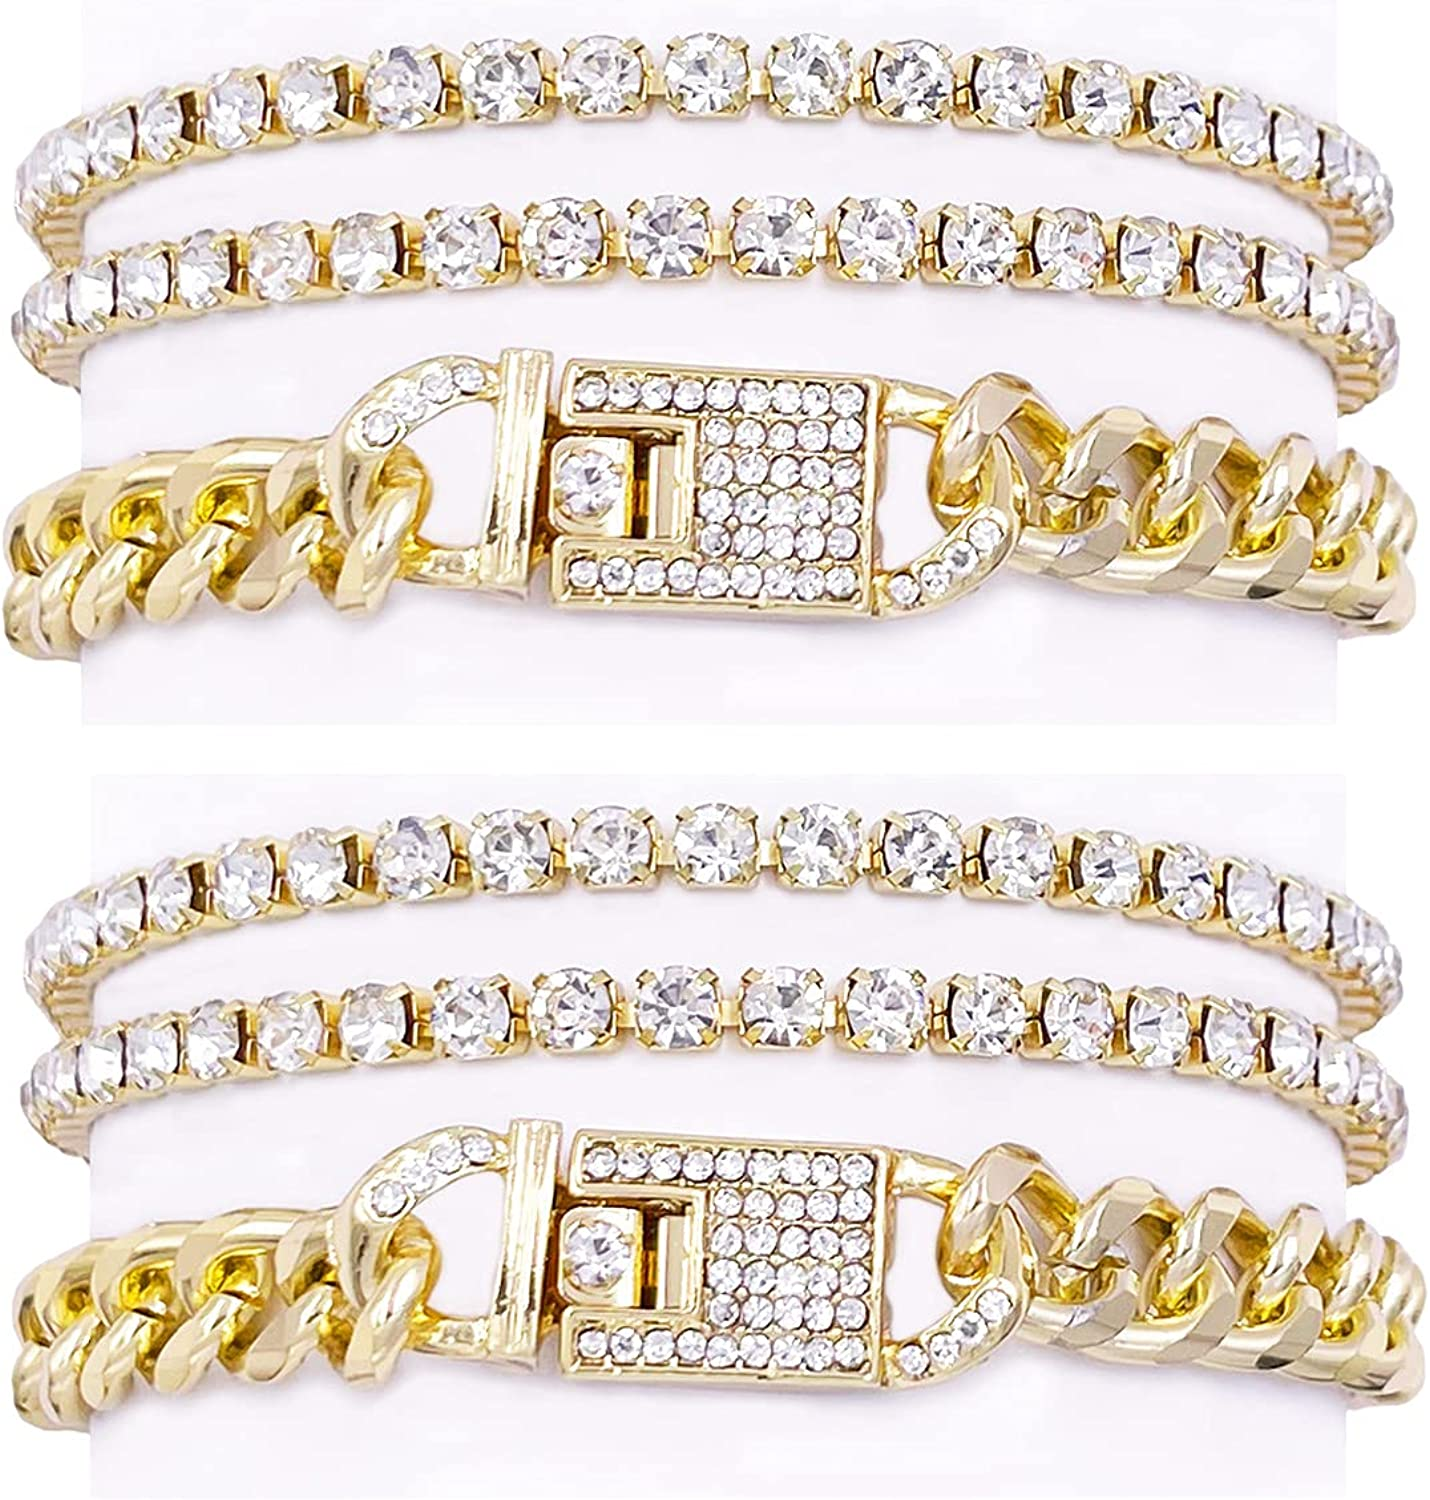 Nanafast Cuban Chain Max 47% OFF Anklet for Rhinestone Opening large release sale Out Filled Women Iced